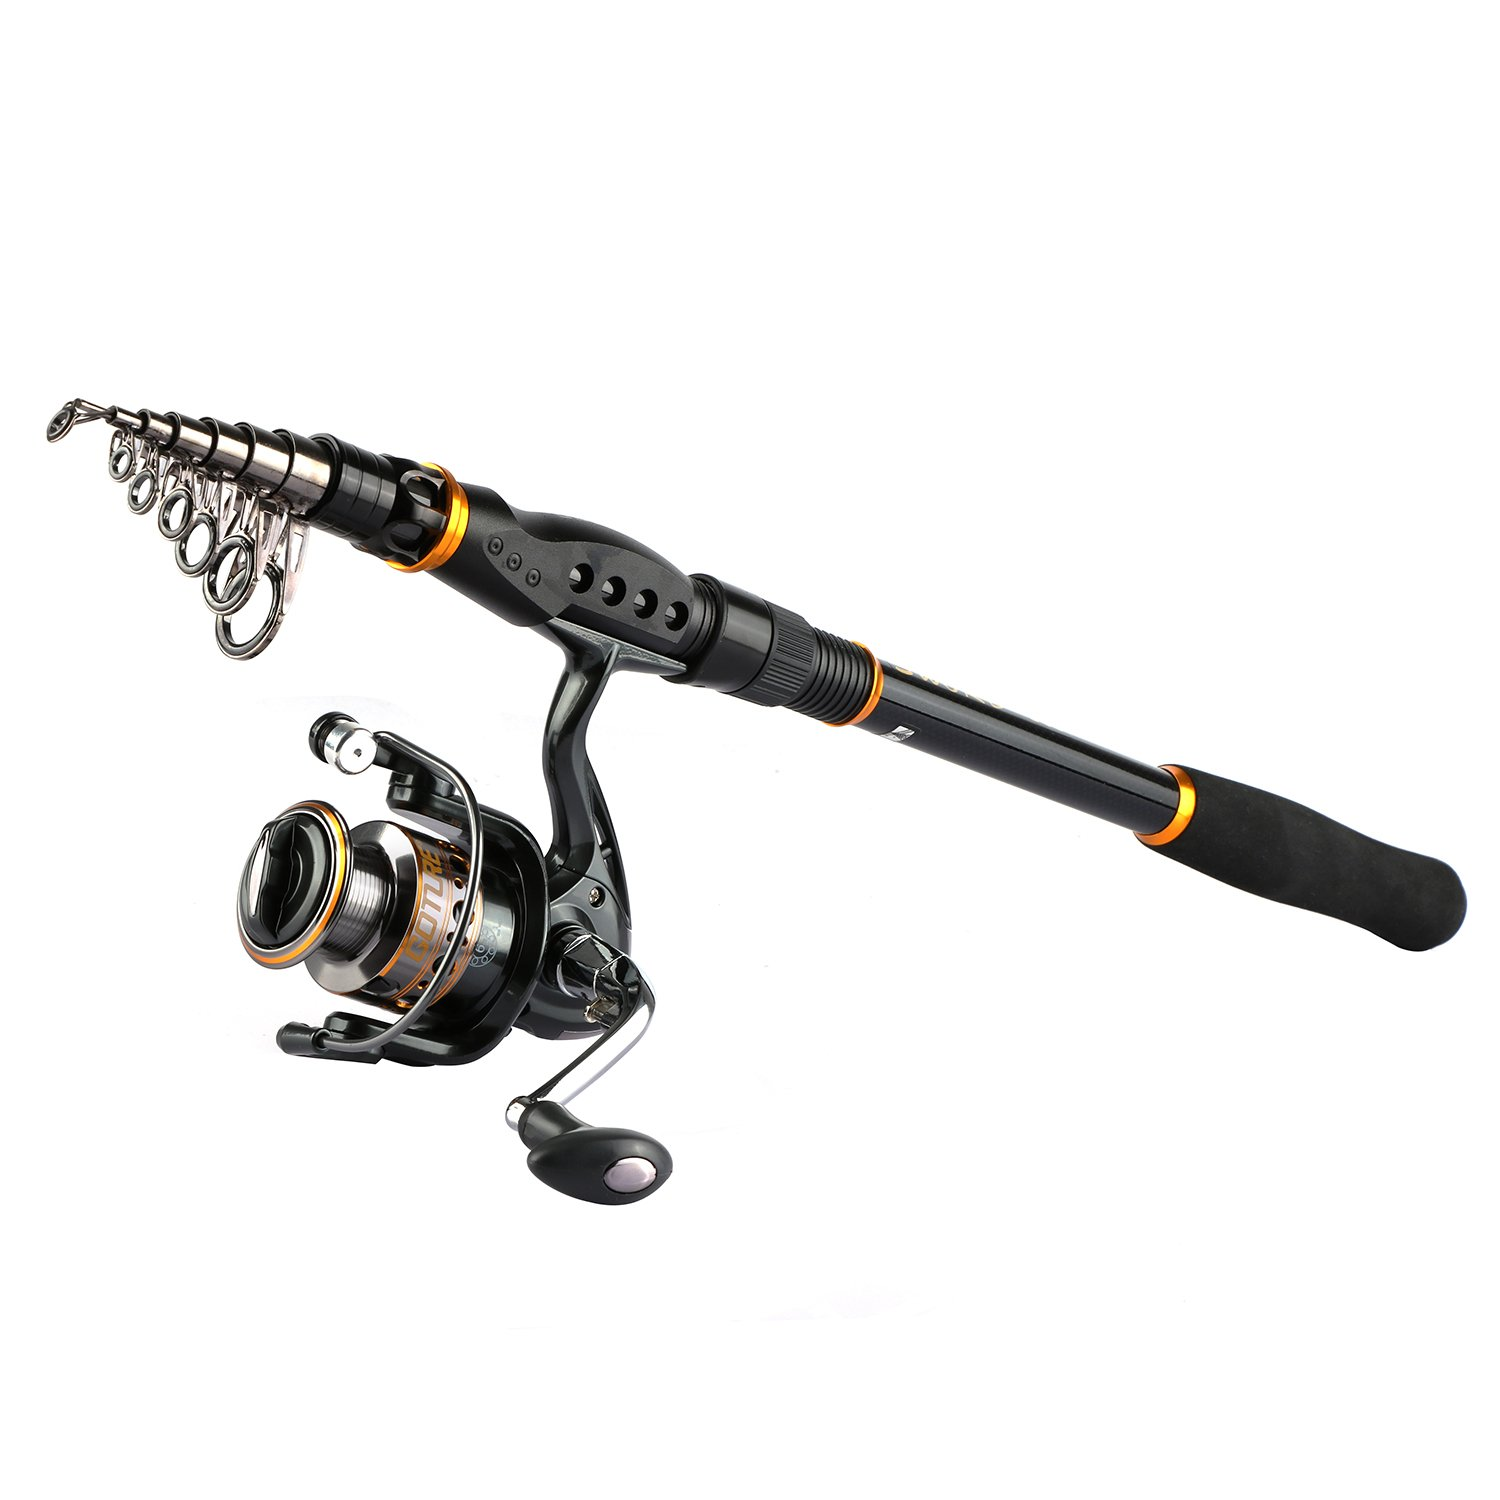 Goture Spinning Fishing Rod and Reel Combo for Bass Trout